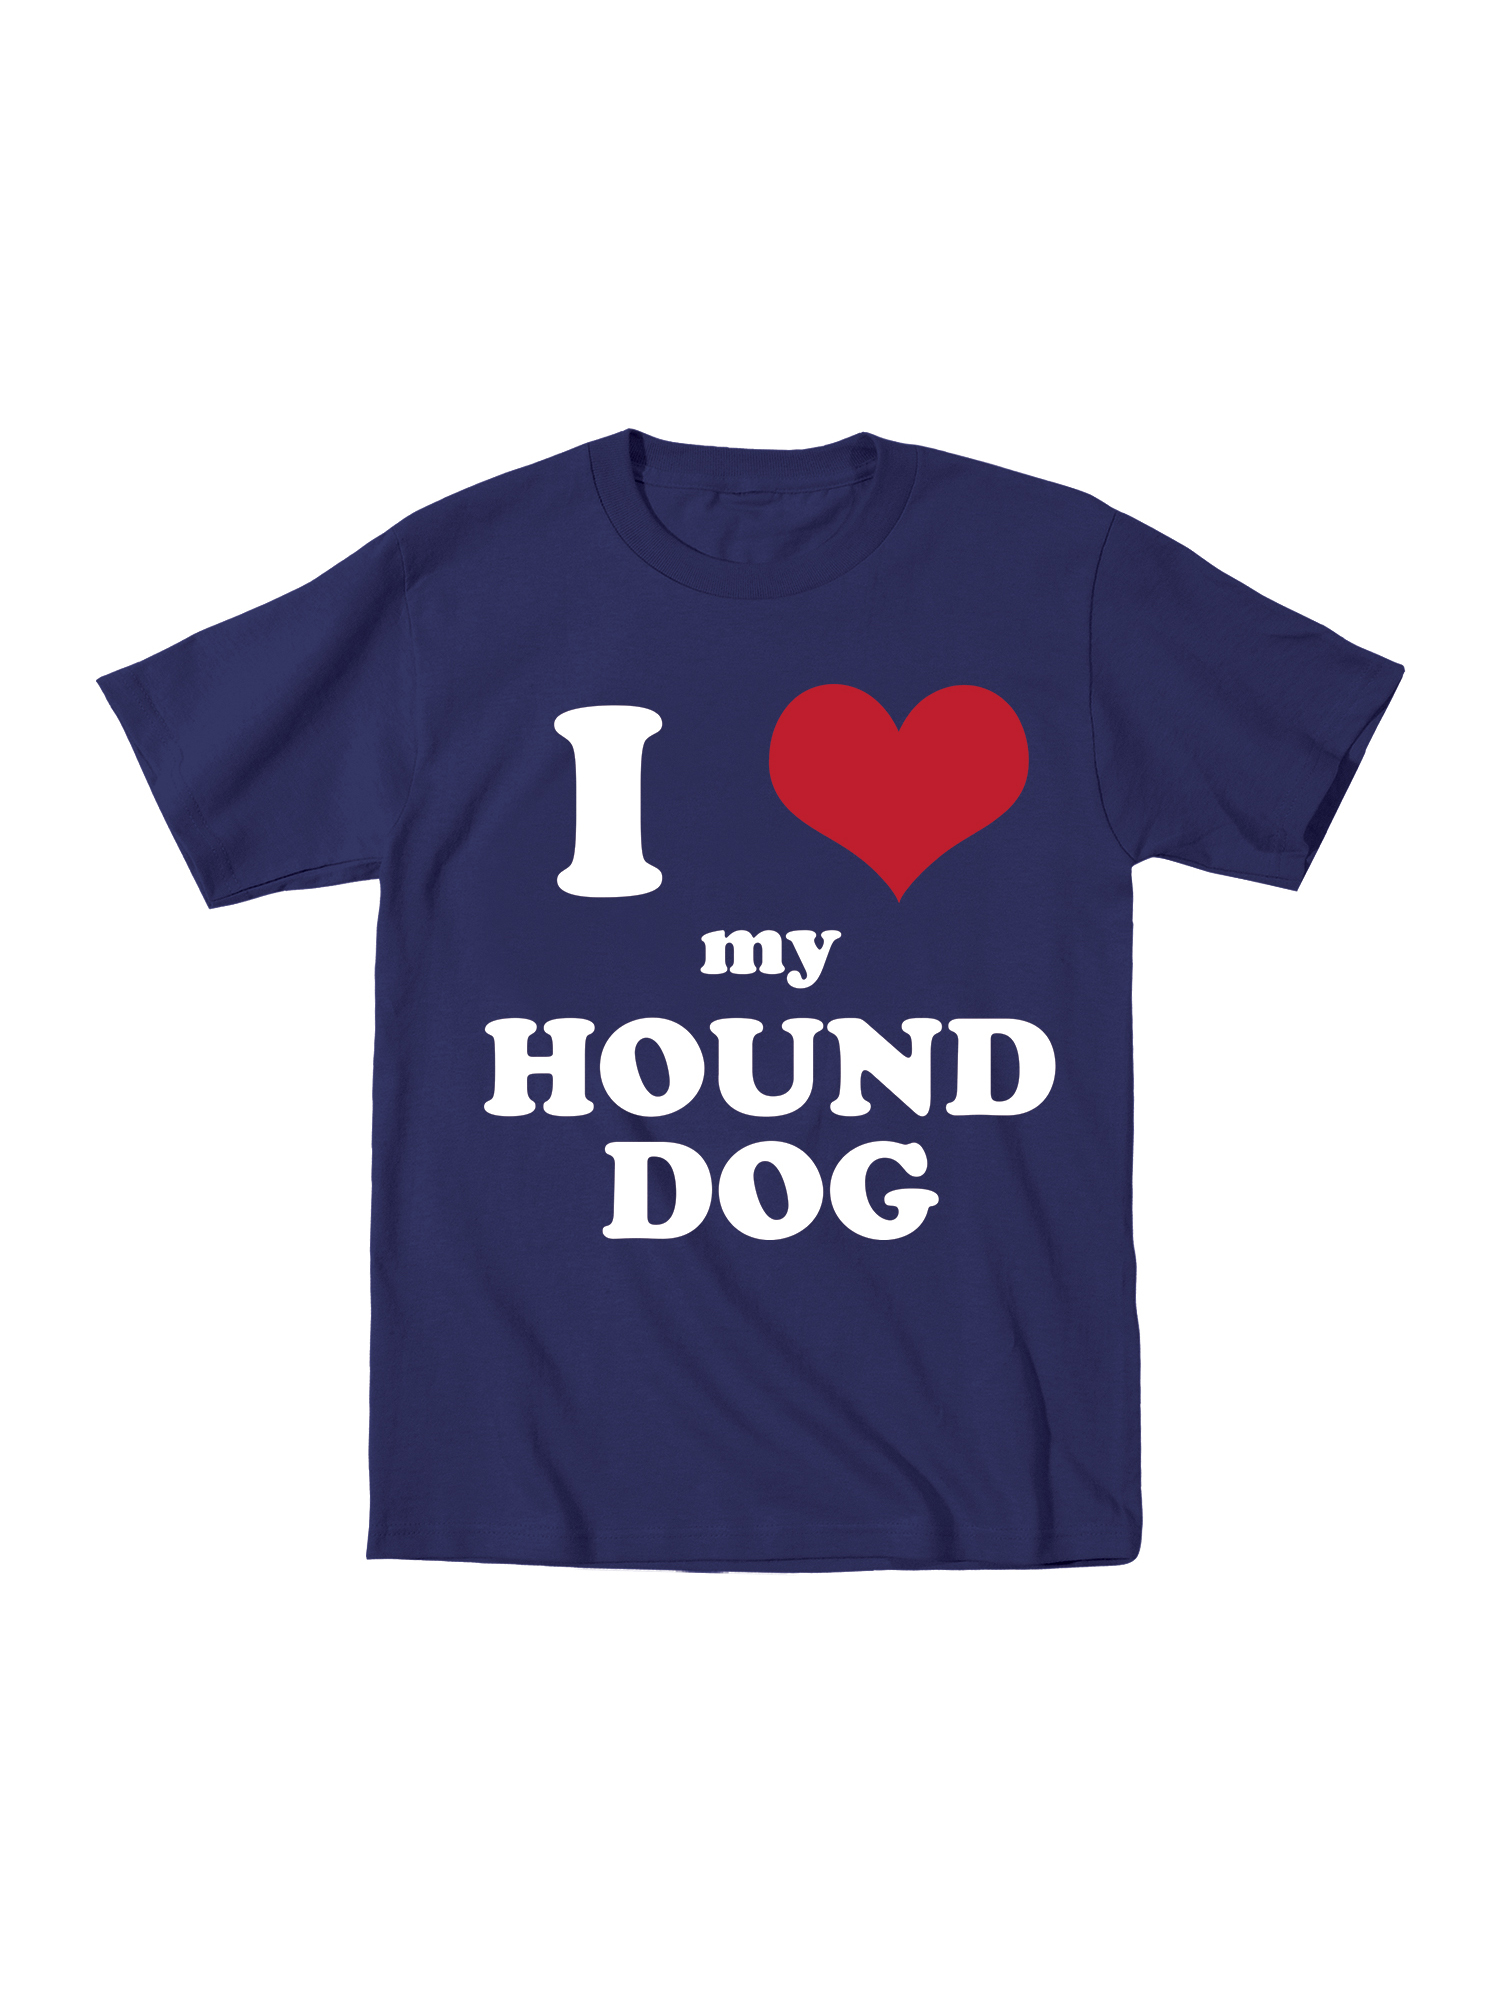 I Heart My Hound Dog Funny Cute Dogs Animals Favorite-Toddler T-Shirt